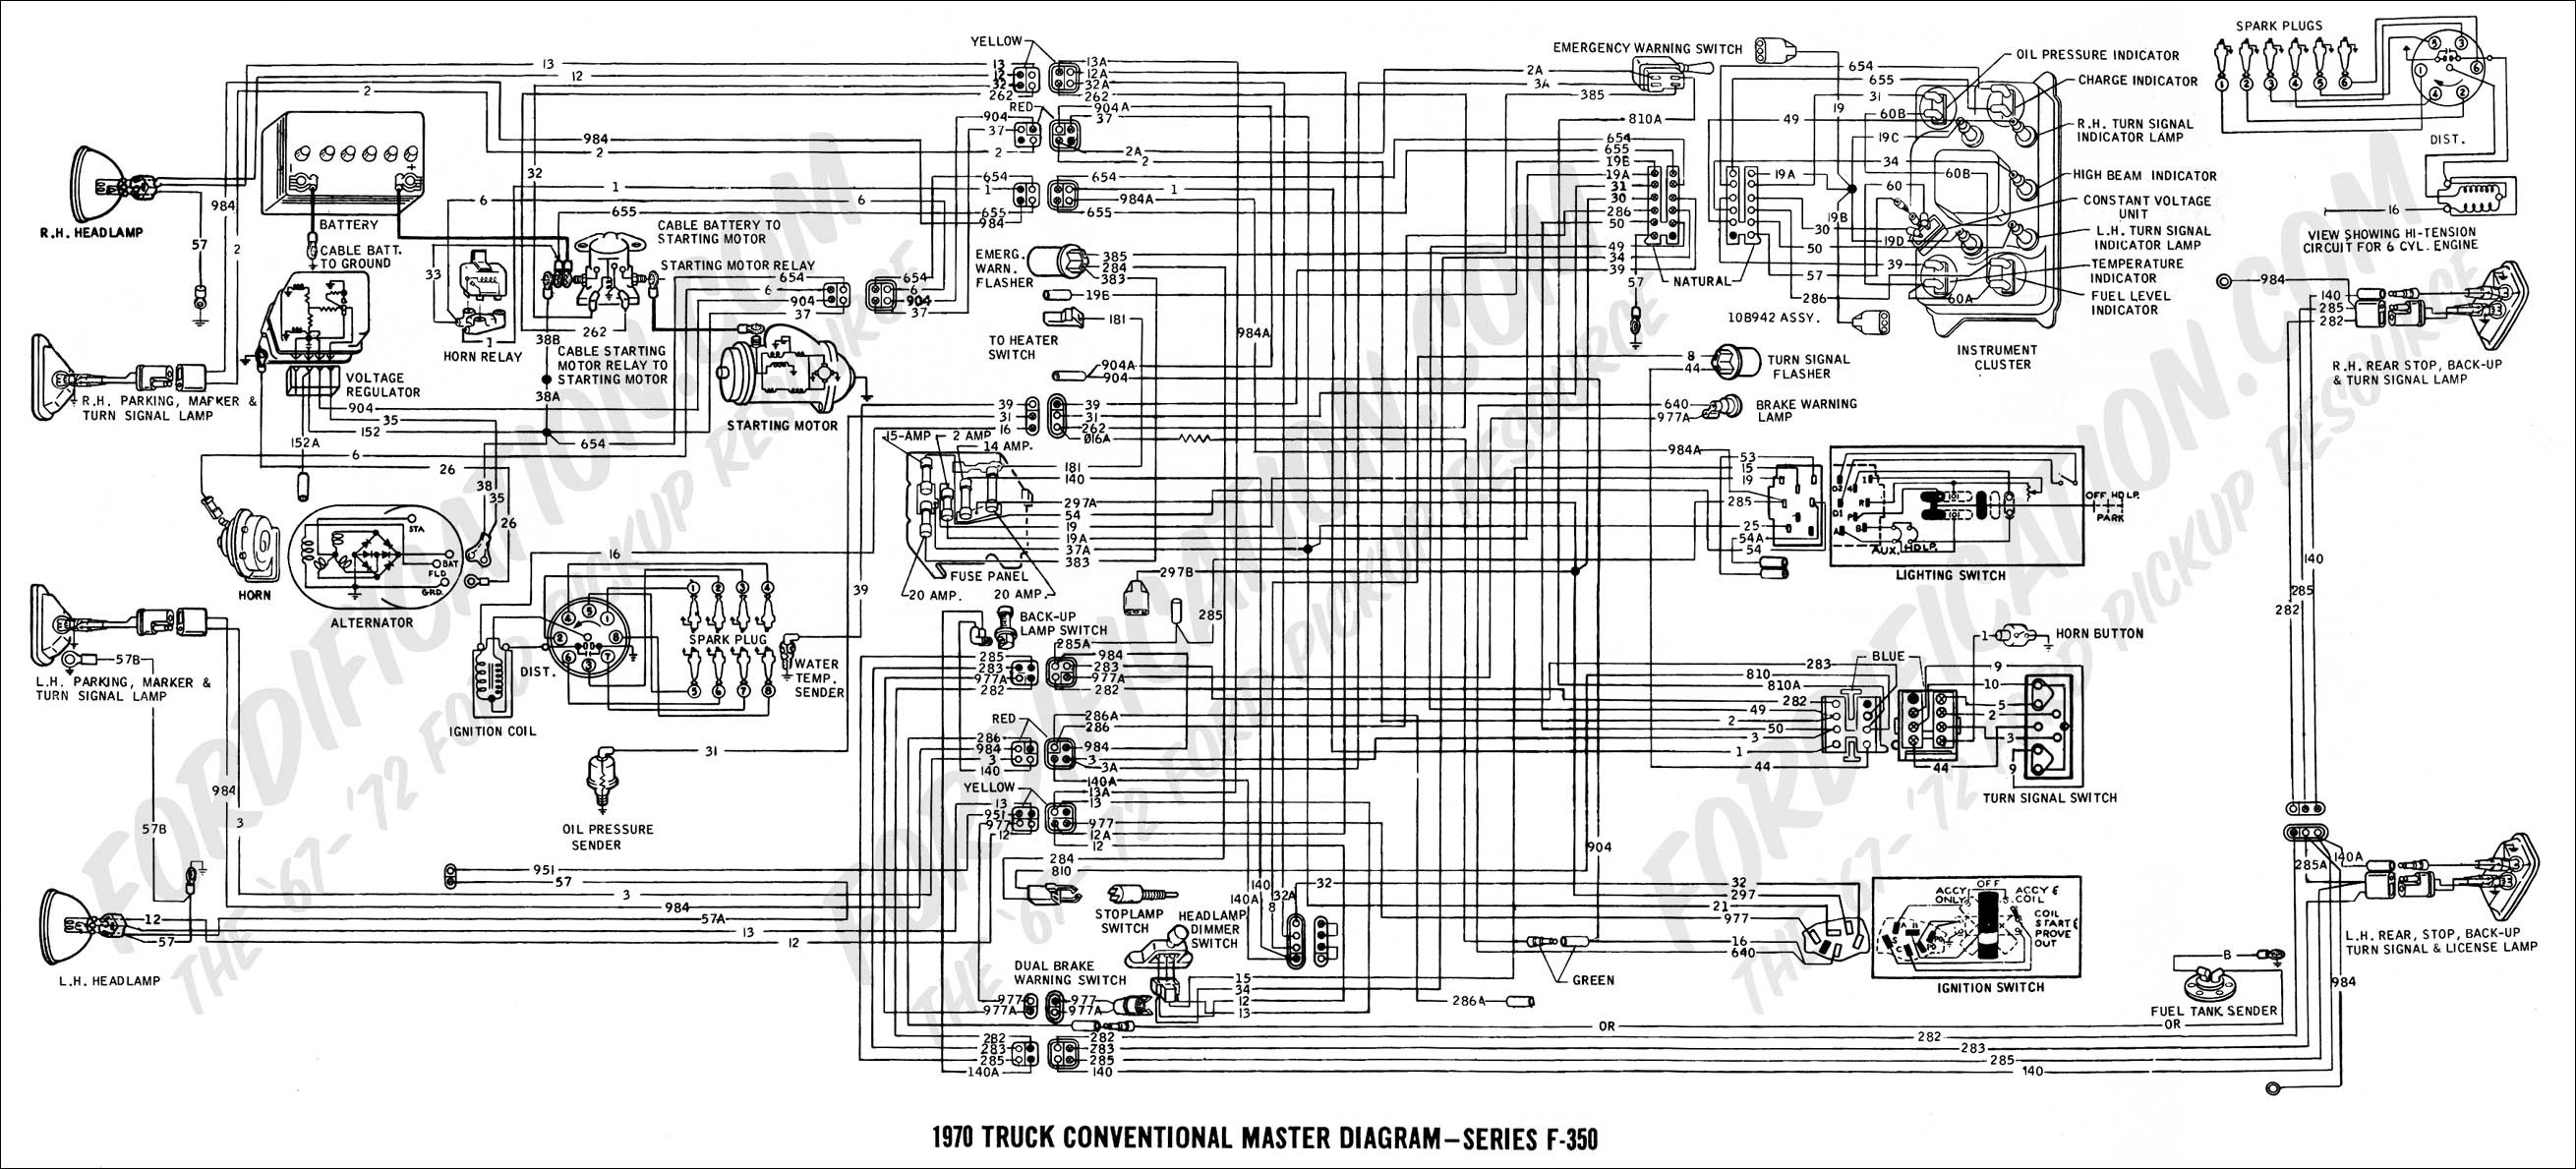 Truck Trailer Wiring Diagram Trailer to ford F350 Wiring Diagram Wiring Diagram